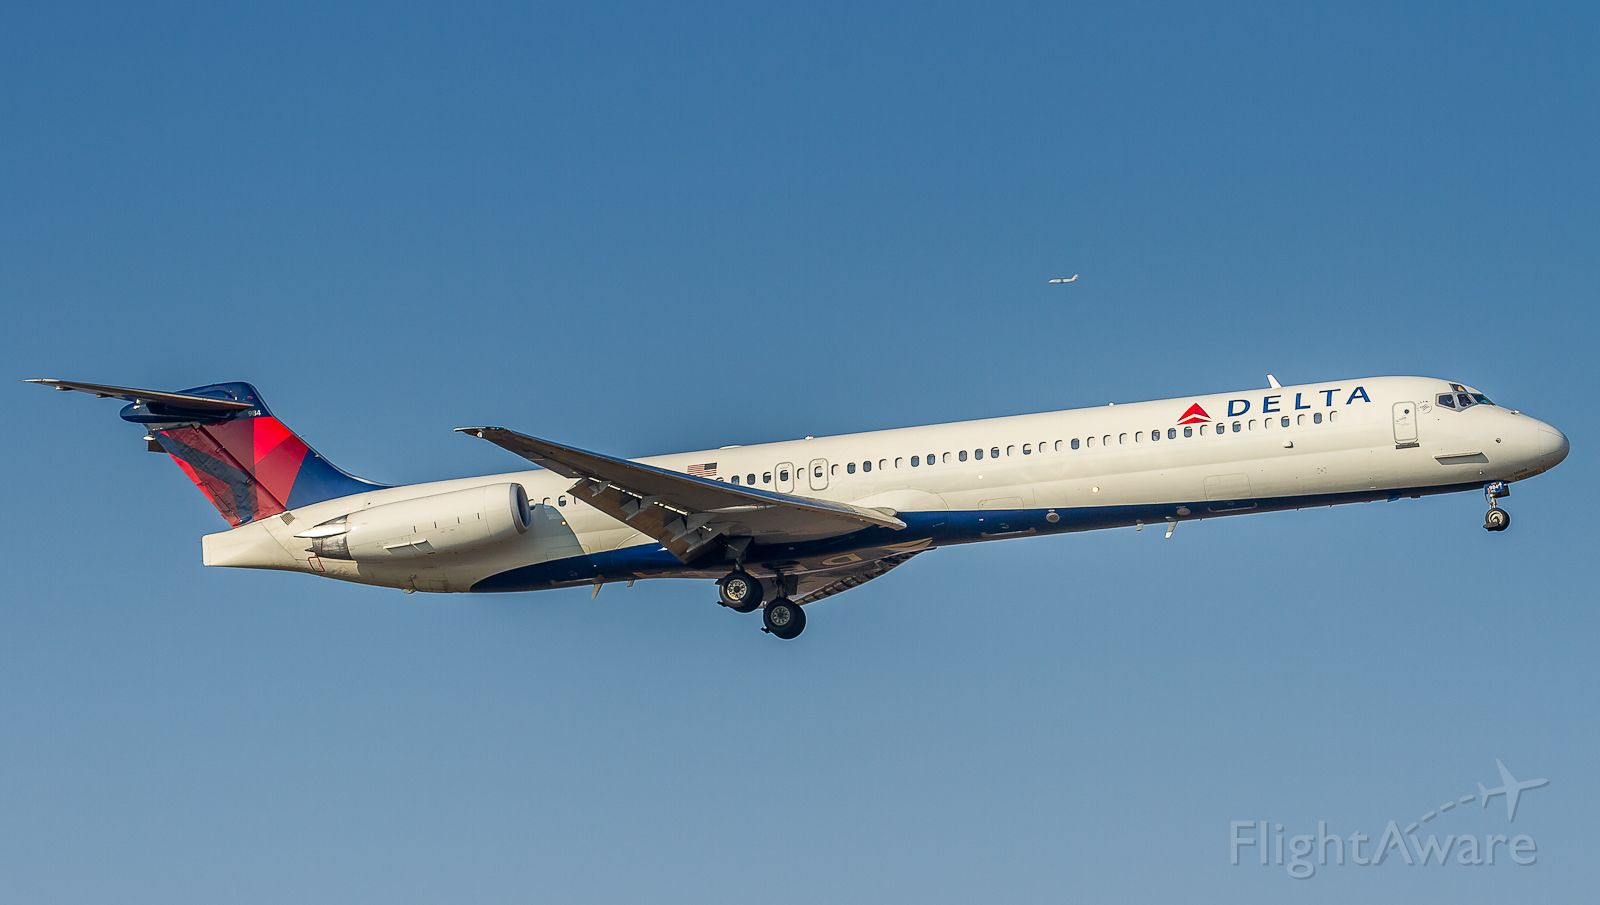 McDonnell Douglas MD-88 (N984DL) - Second attempt at the landing for this Delta MD88 as the first approach was way too high...